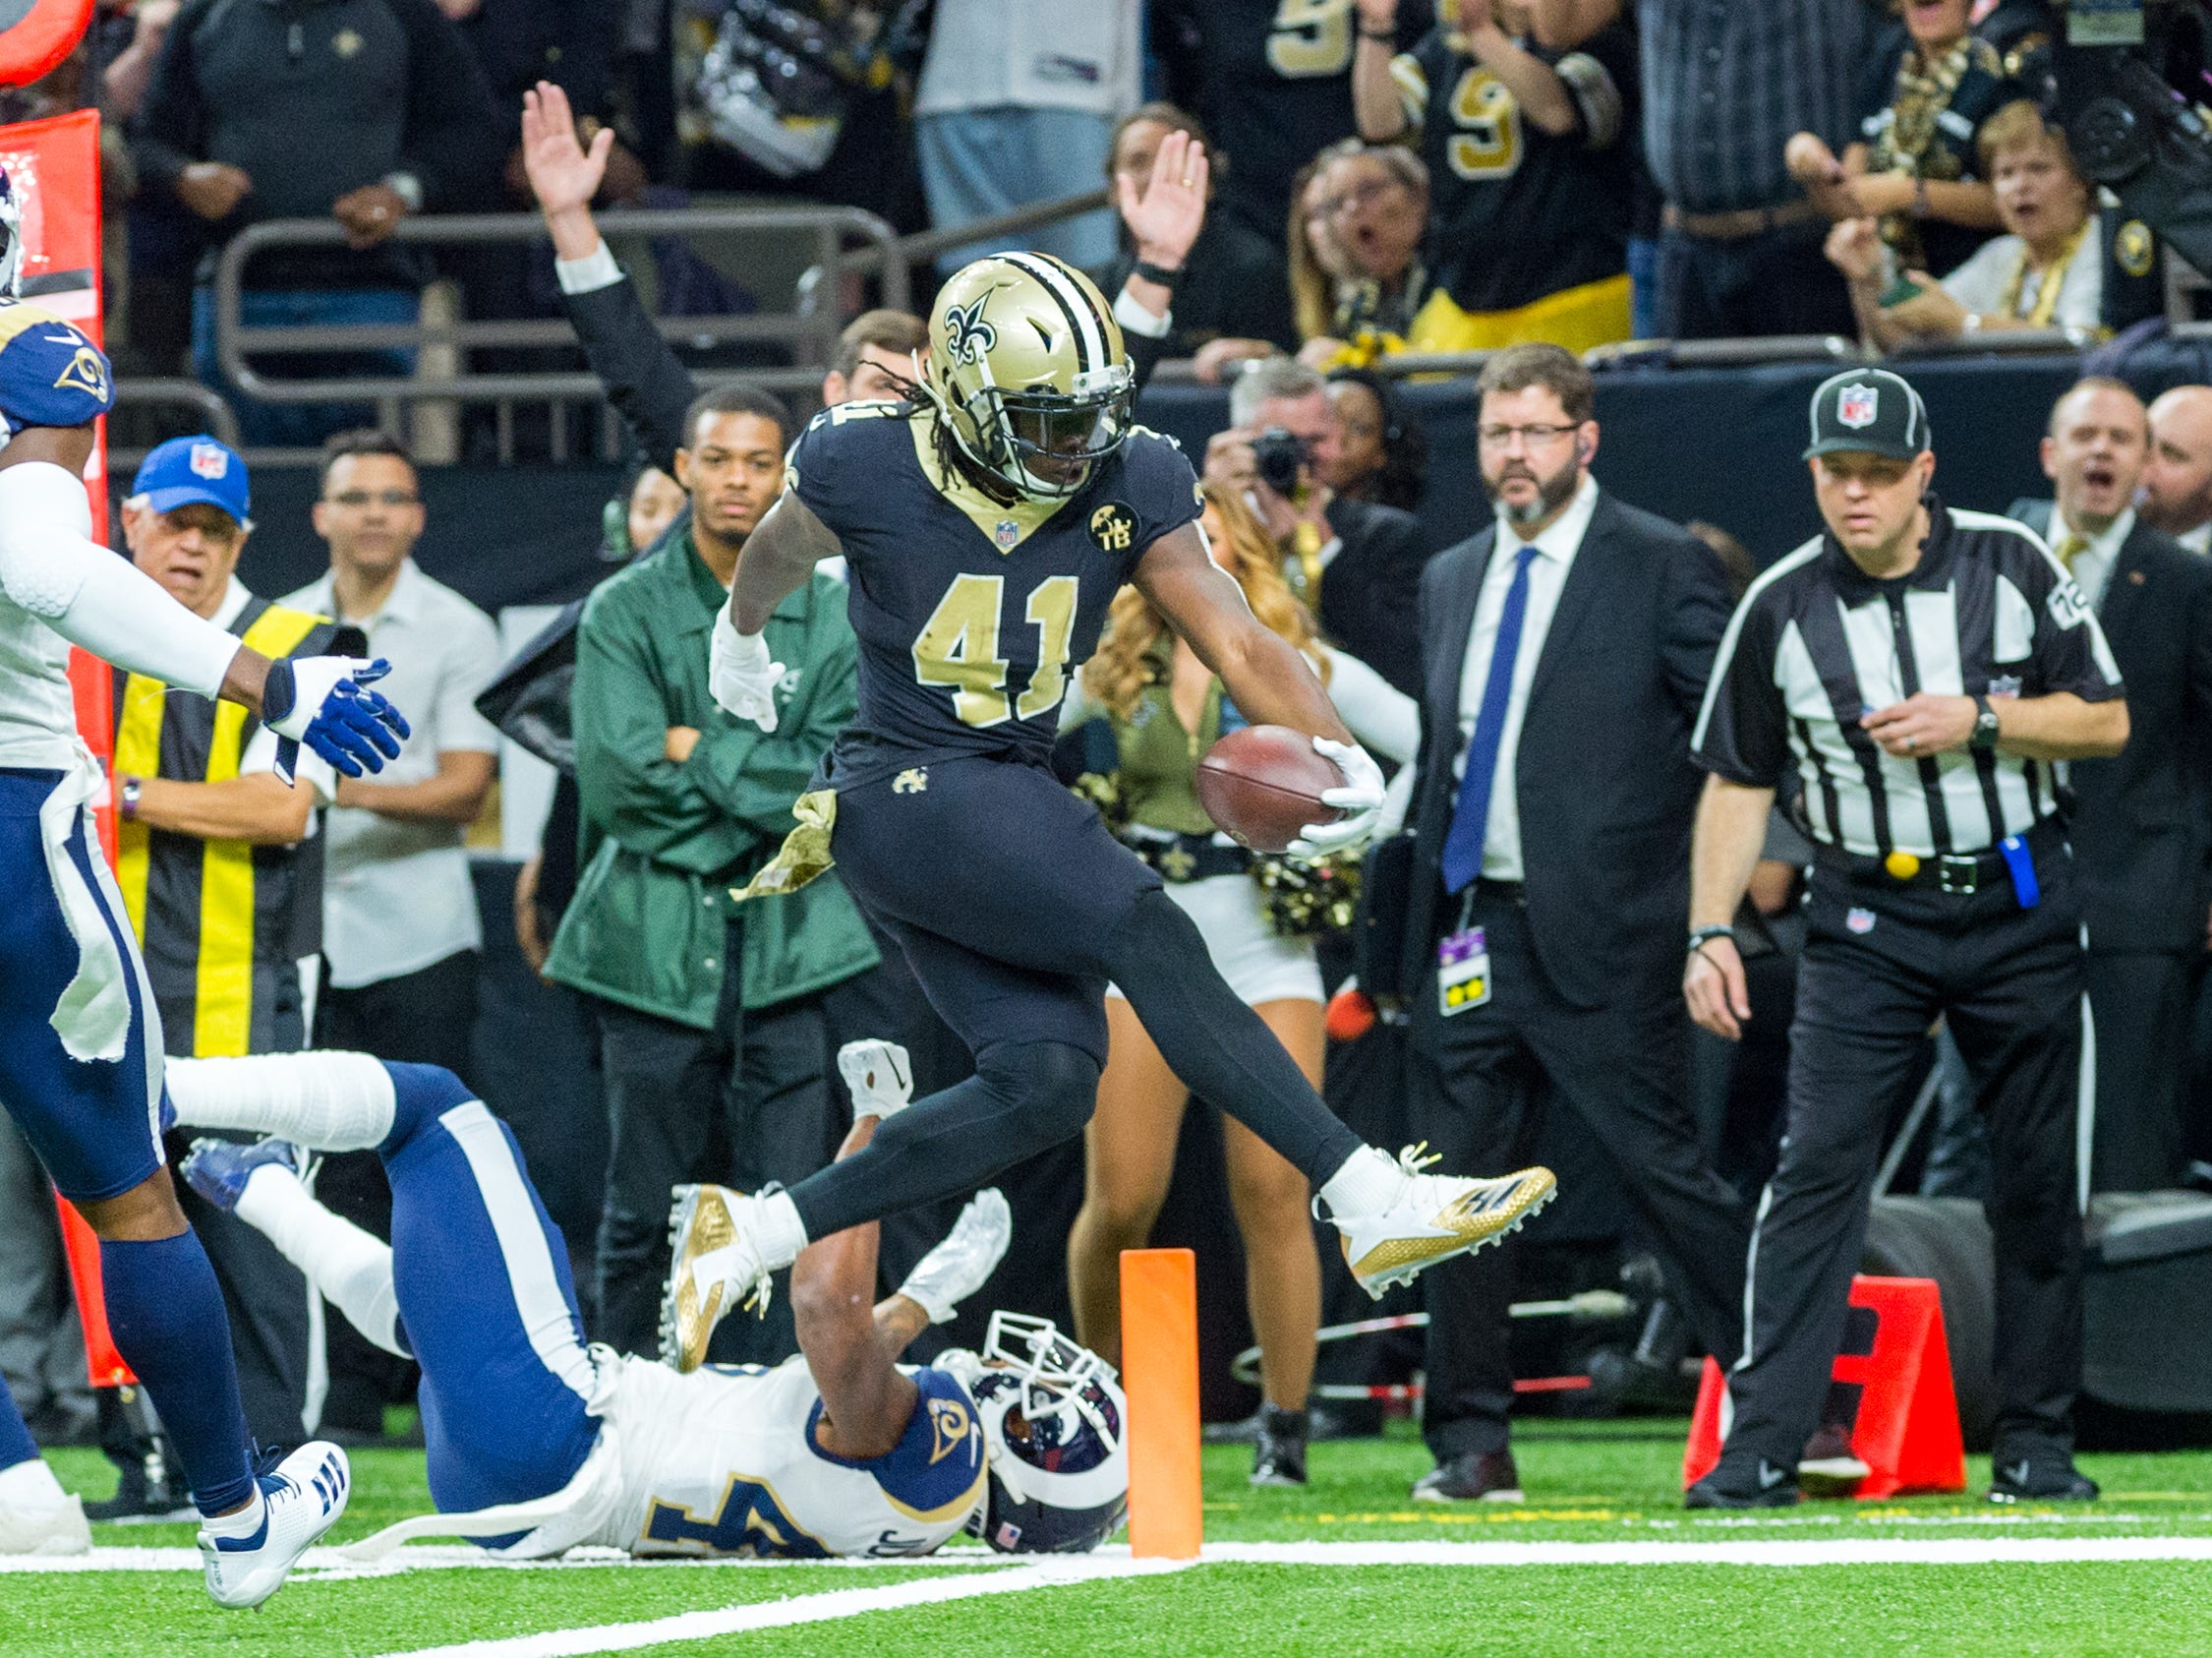 Saints runningback Alvin Kamara scores a touchdown on the opening drive during the NFL football game between the New Orleans Saints and the Los Angeles Rams on Sunday, Nov. 4, 2018.